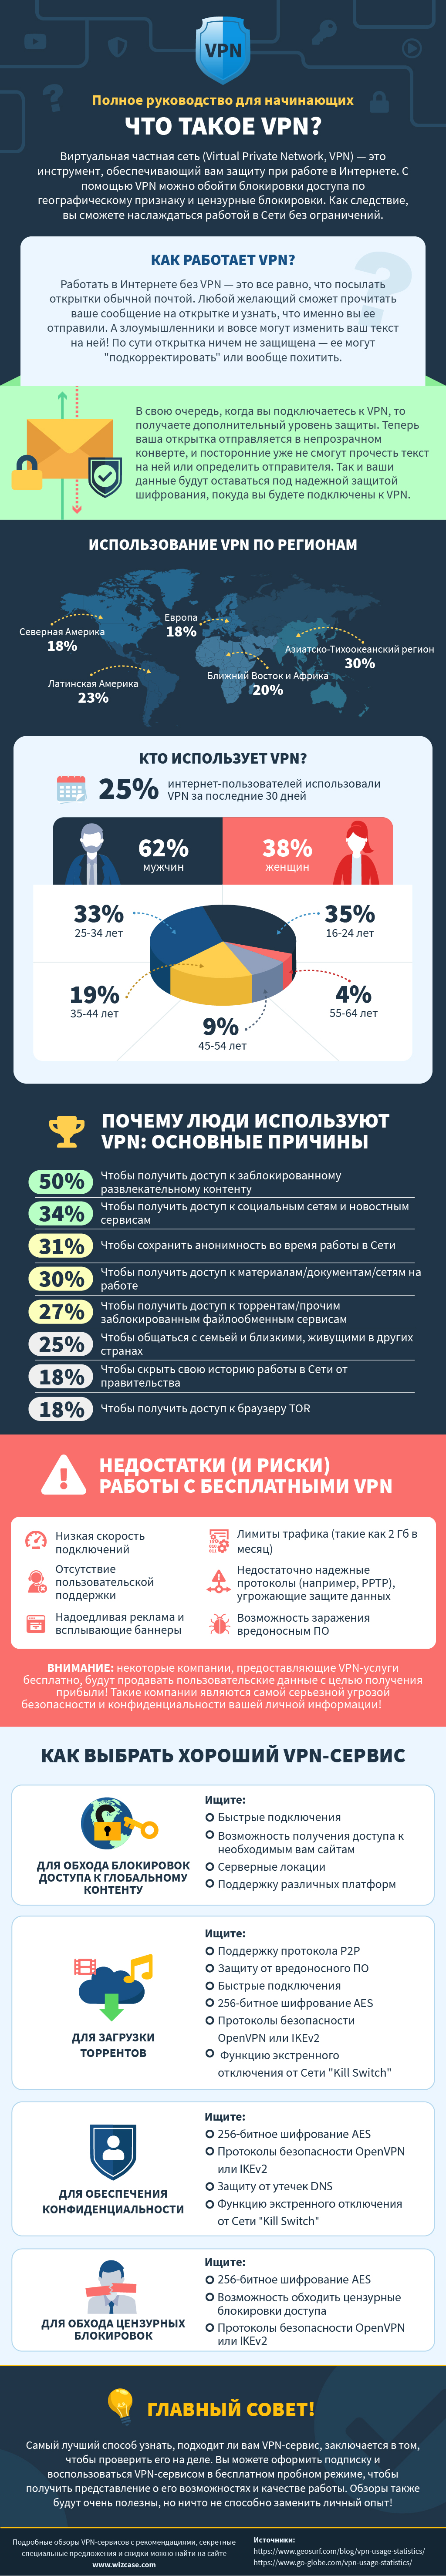 infographic guide to what is a VPN in Russian